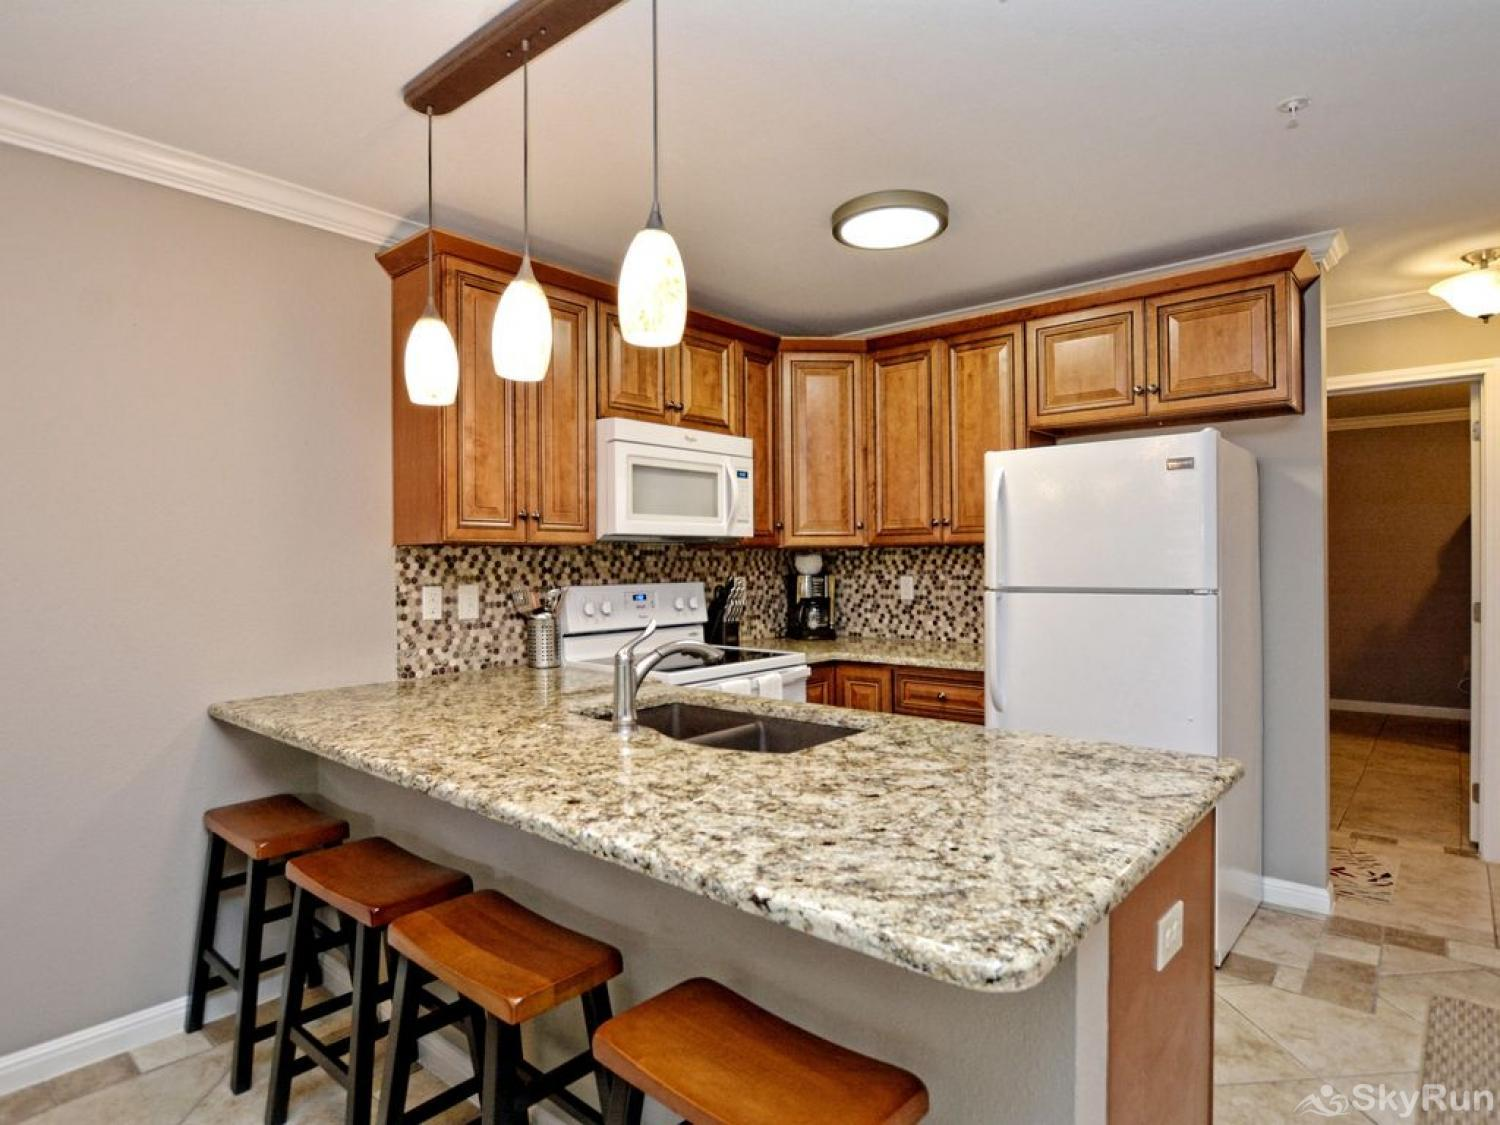 WATERWHEEL PARADISE CONDO Kitchen equipped with all cooking and dining essentials